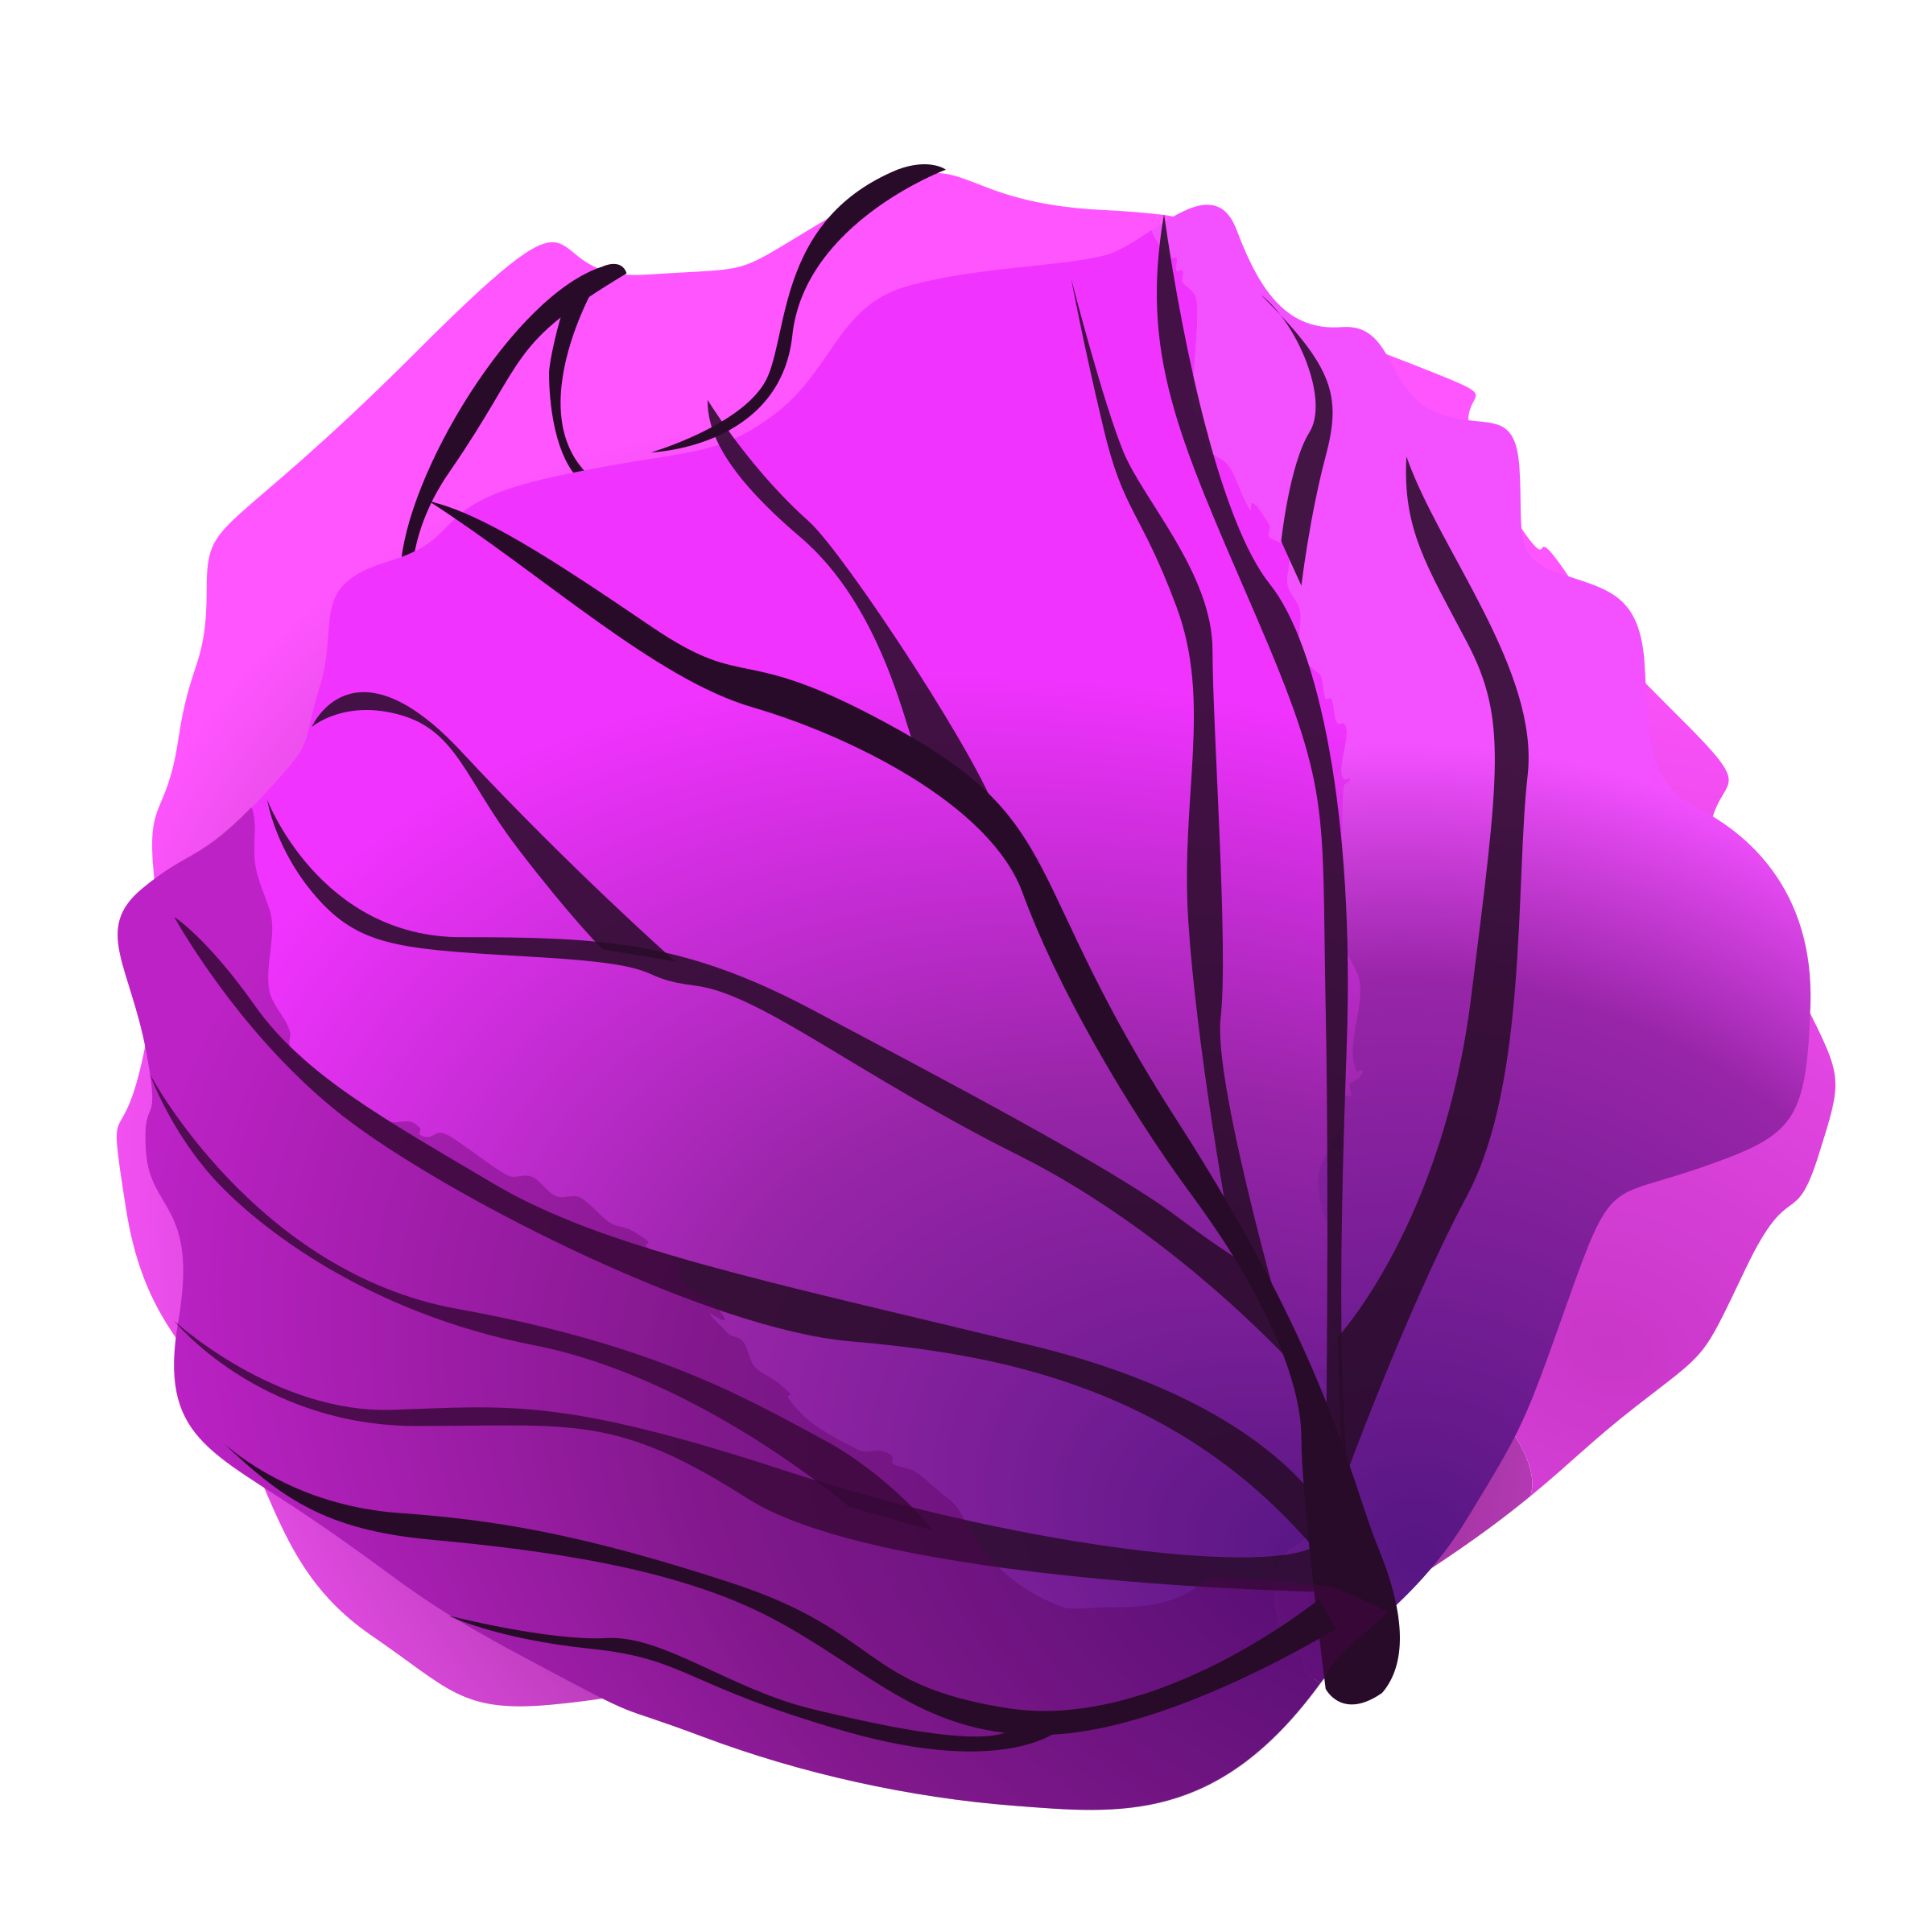 red cabbage by aidaivars